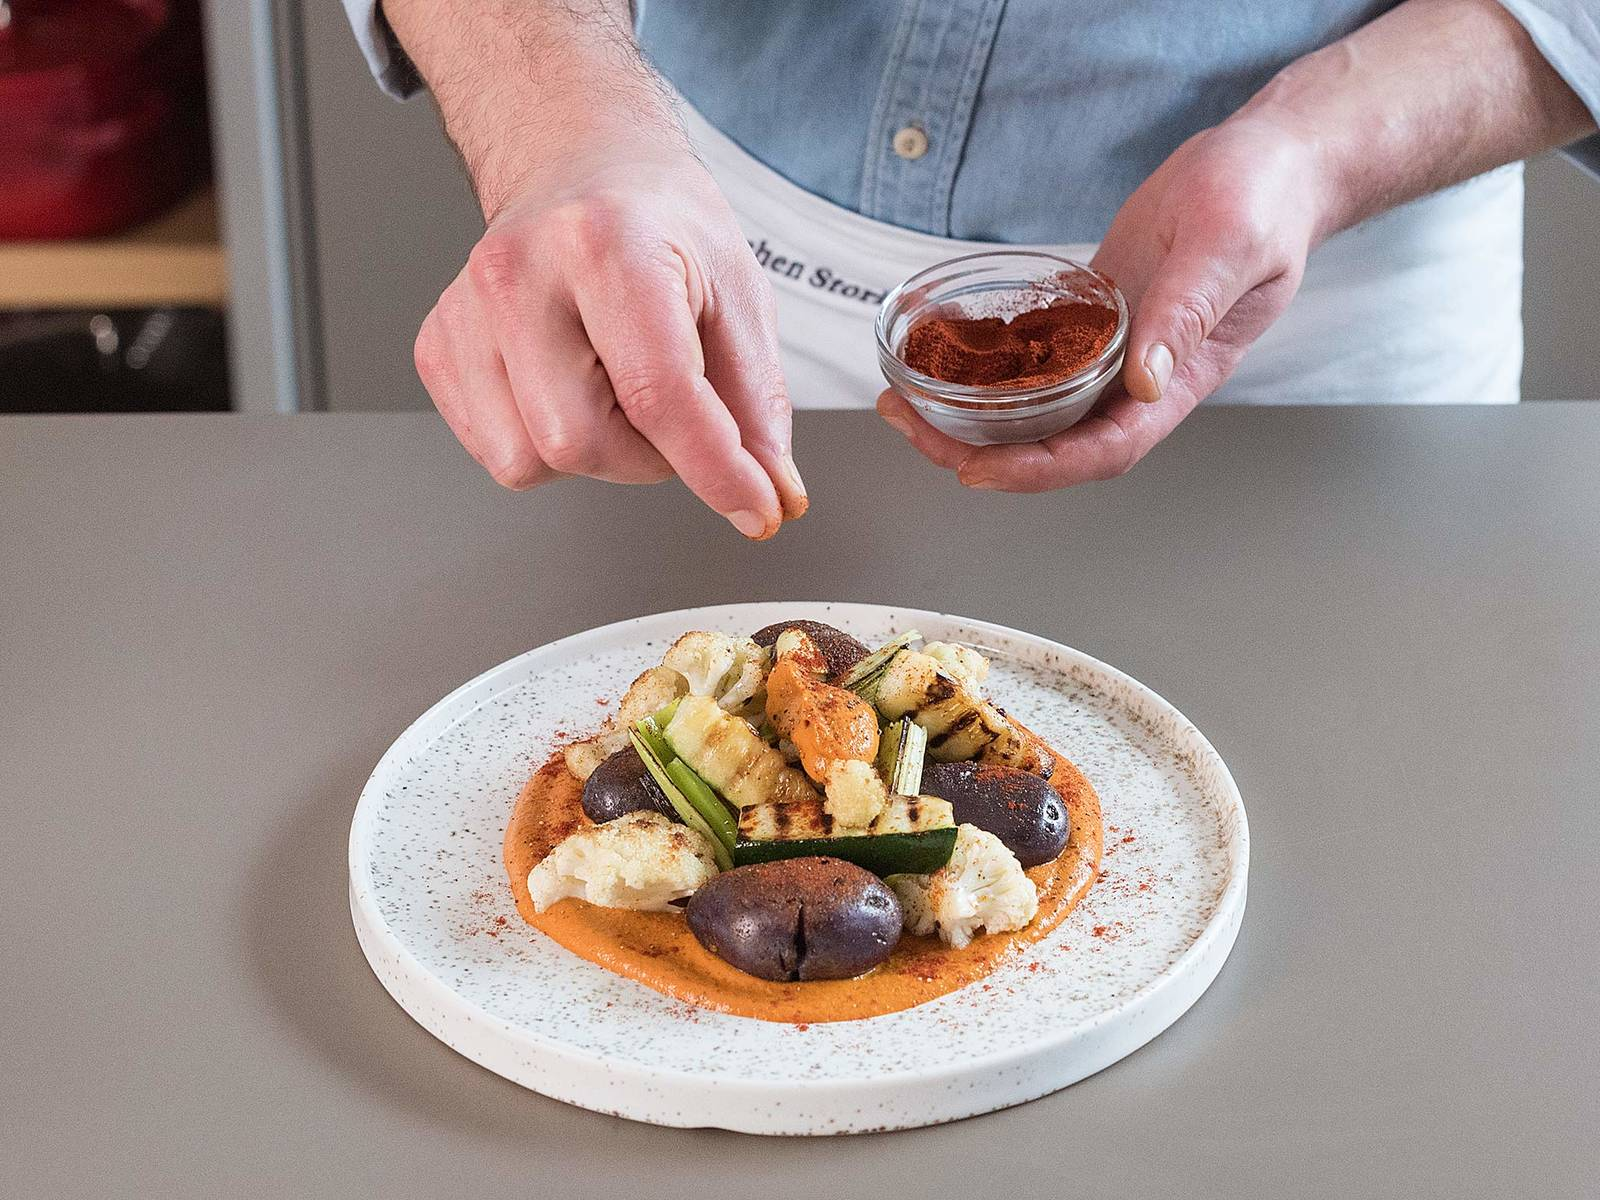 Mound the romesco sauce in the center of a large plate and serve with crushed potatoes, seared leeks, zucchini, and cauliflower. Garnish with a drizzle of olive oil and a sprinkle of salt. Enjoy!